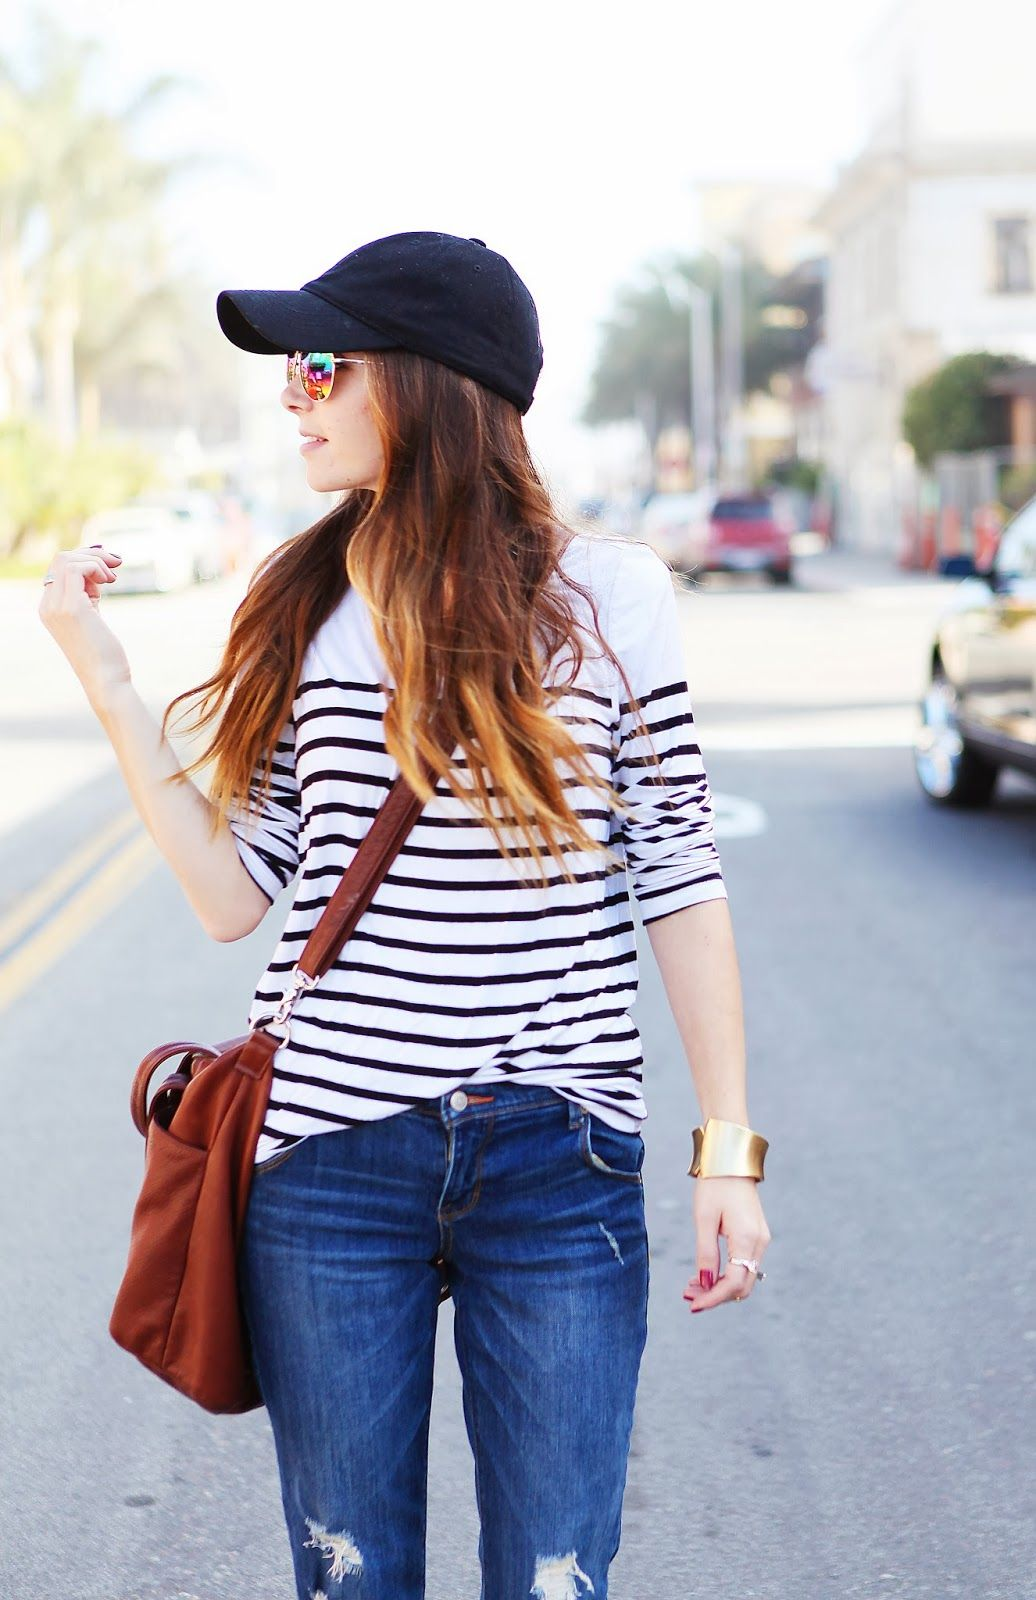 7ba0469012d I always grab a baseball cap for rainy days! This looks like a great casual  friday  striped tee